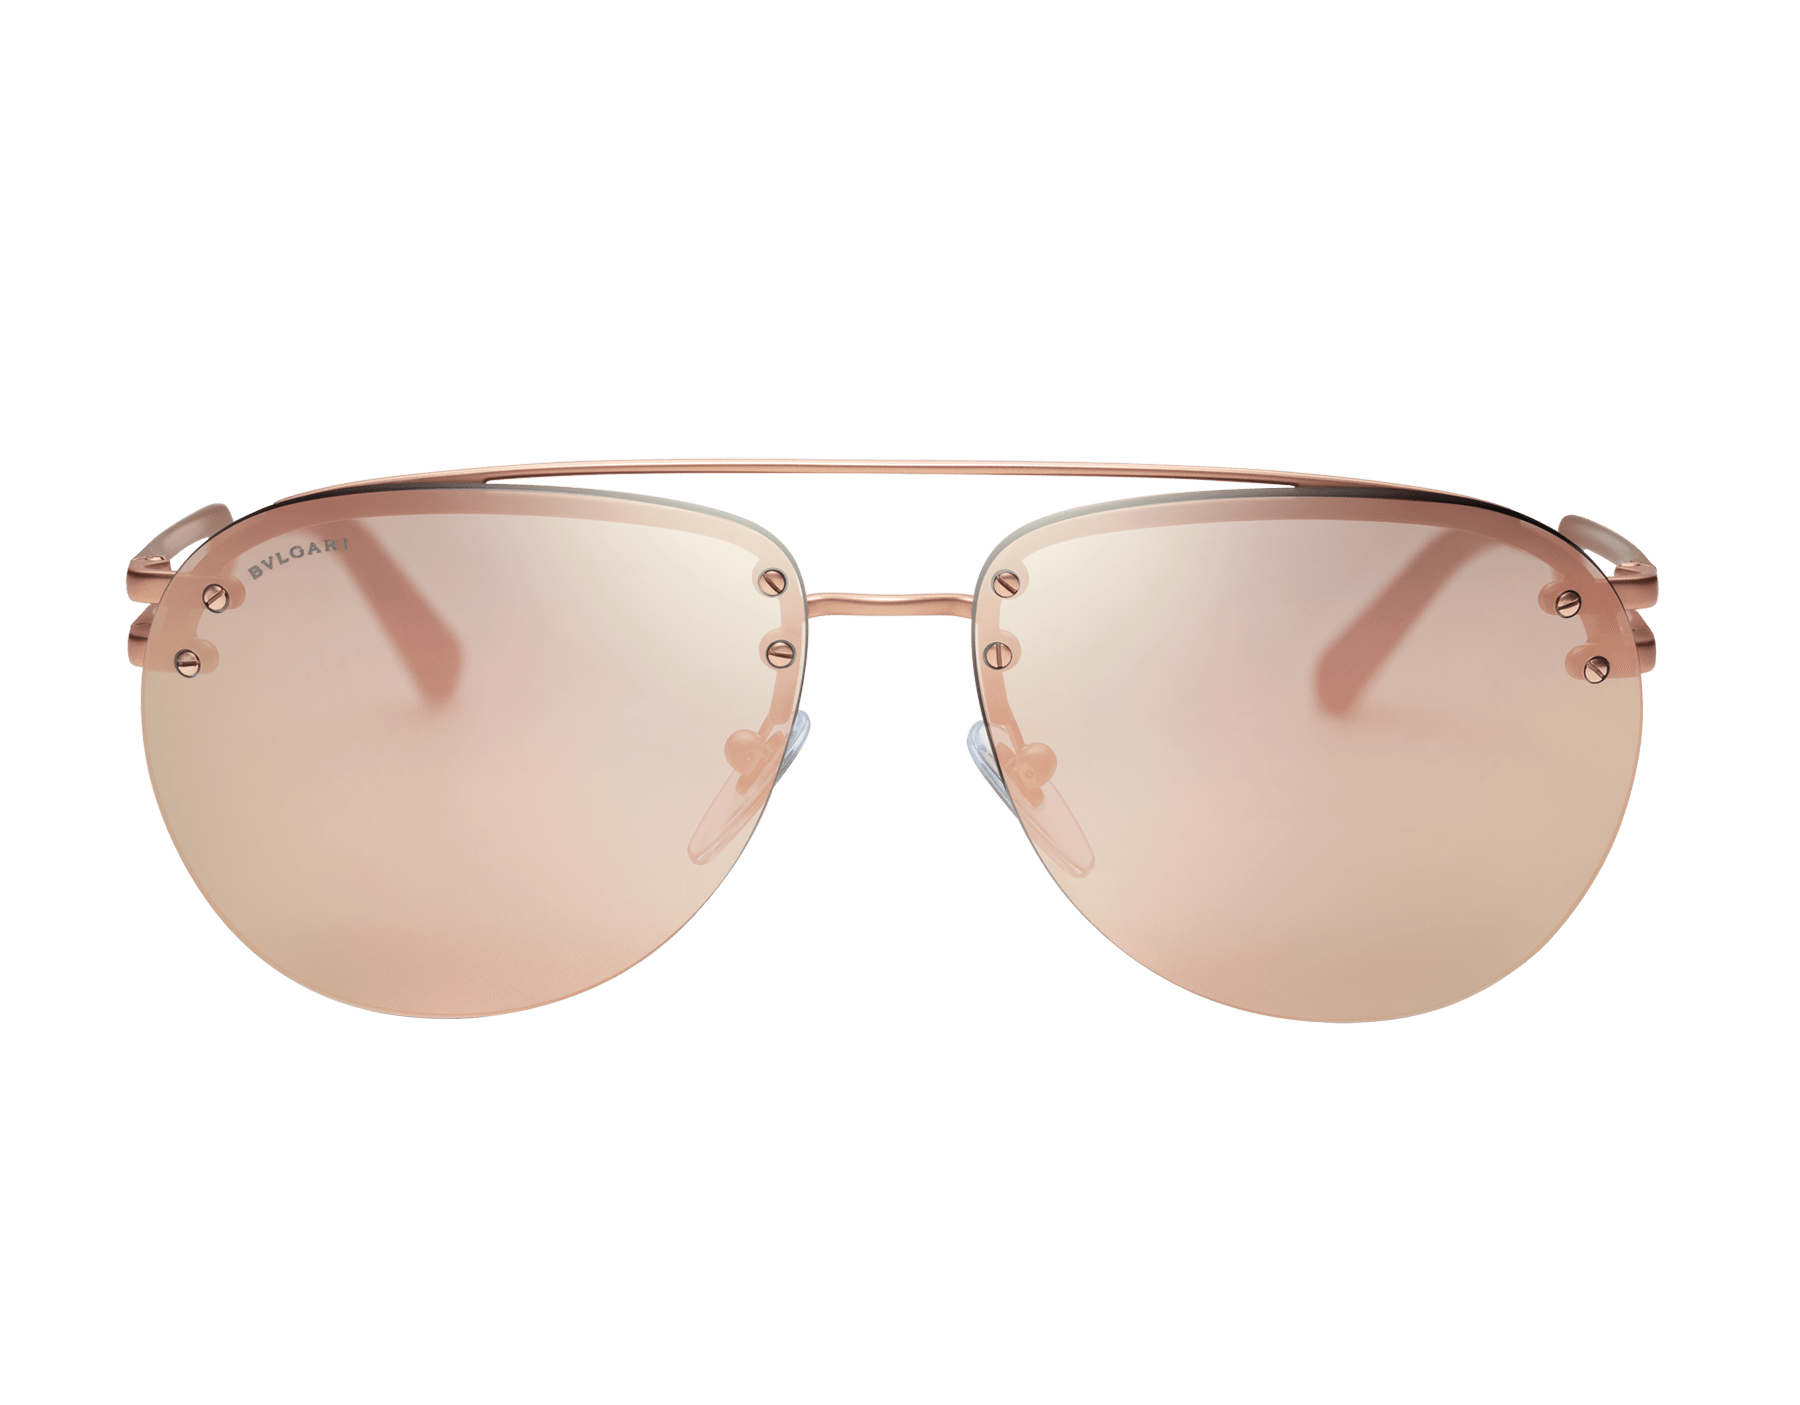 Bvlgari Bvlgari metal double bridge aviator sunglasses. 904043 image 2